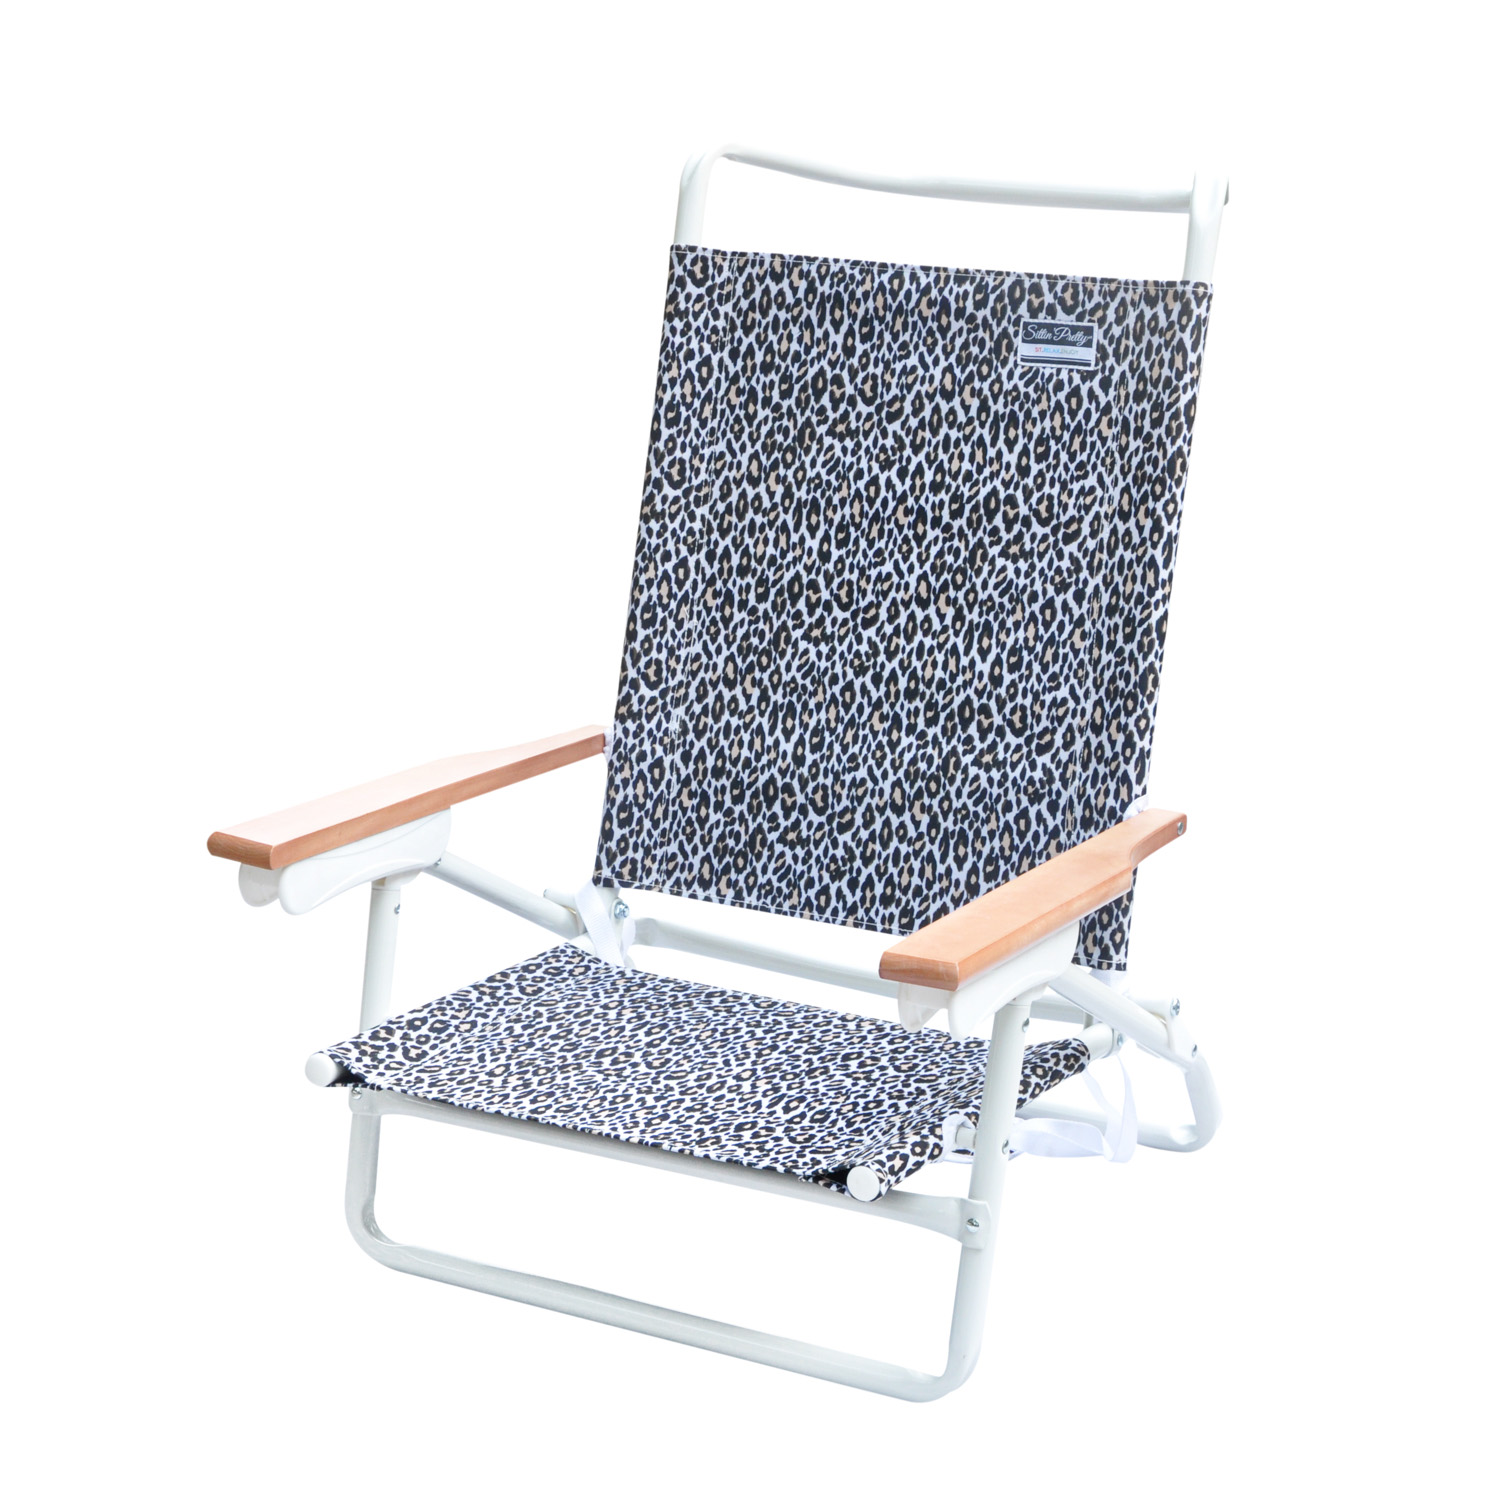 Attirant Stylish 5  Position Lay Flat White Powder Coated Aluminum Frame Beach Chair